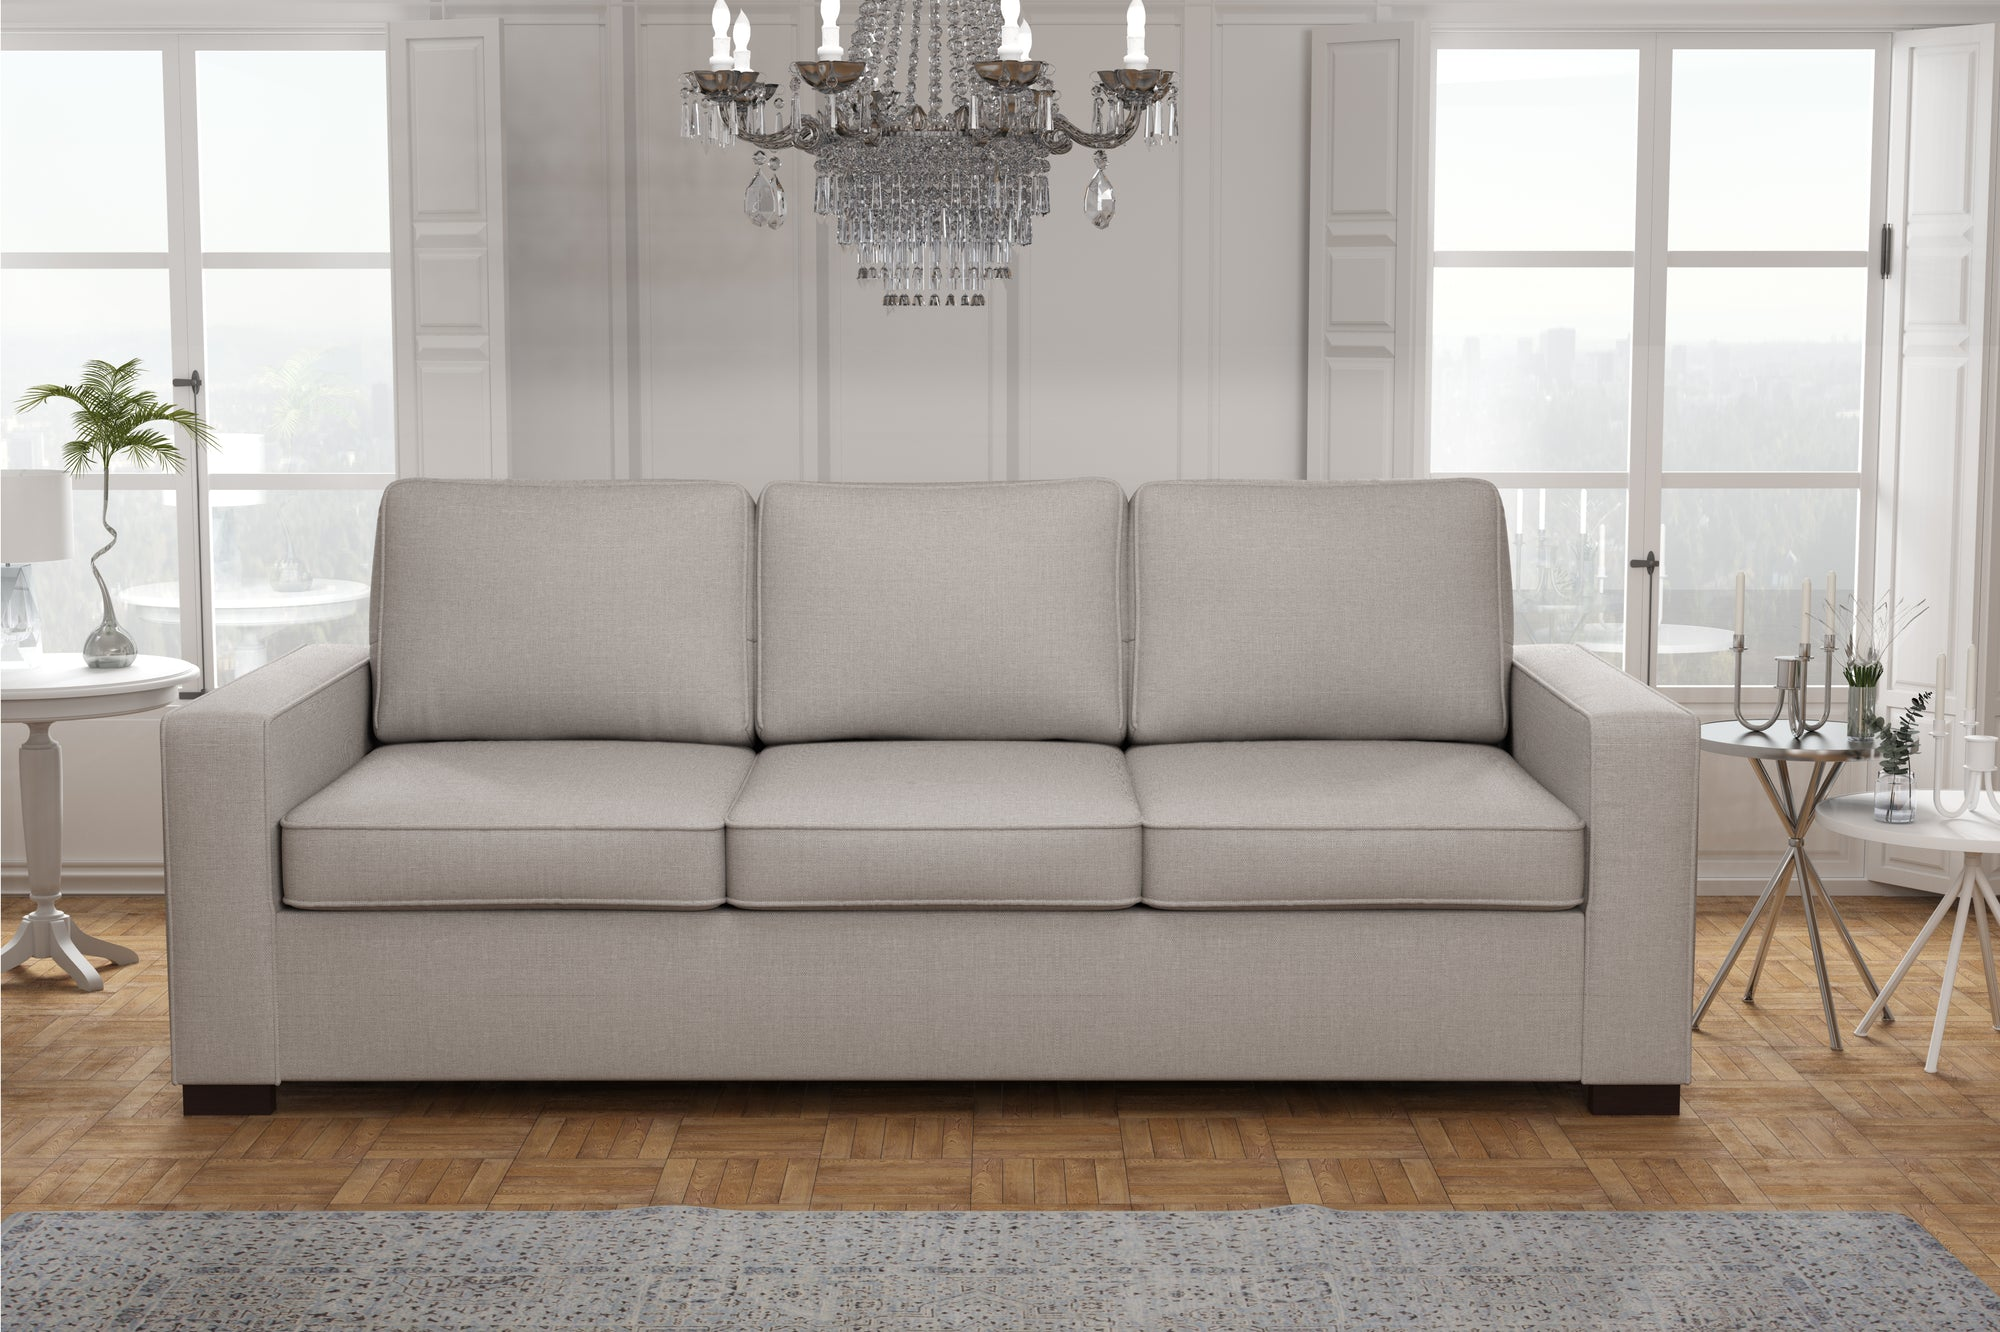 Canapé 3 places -  227 x 85 x 90 cm - Collection Prestige - Gris Clair